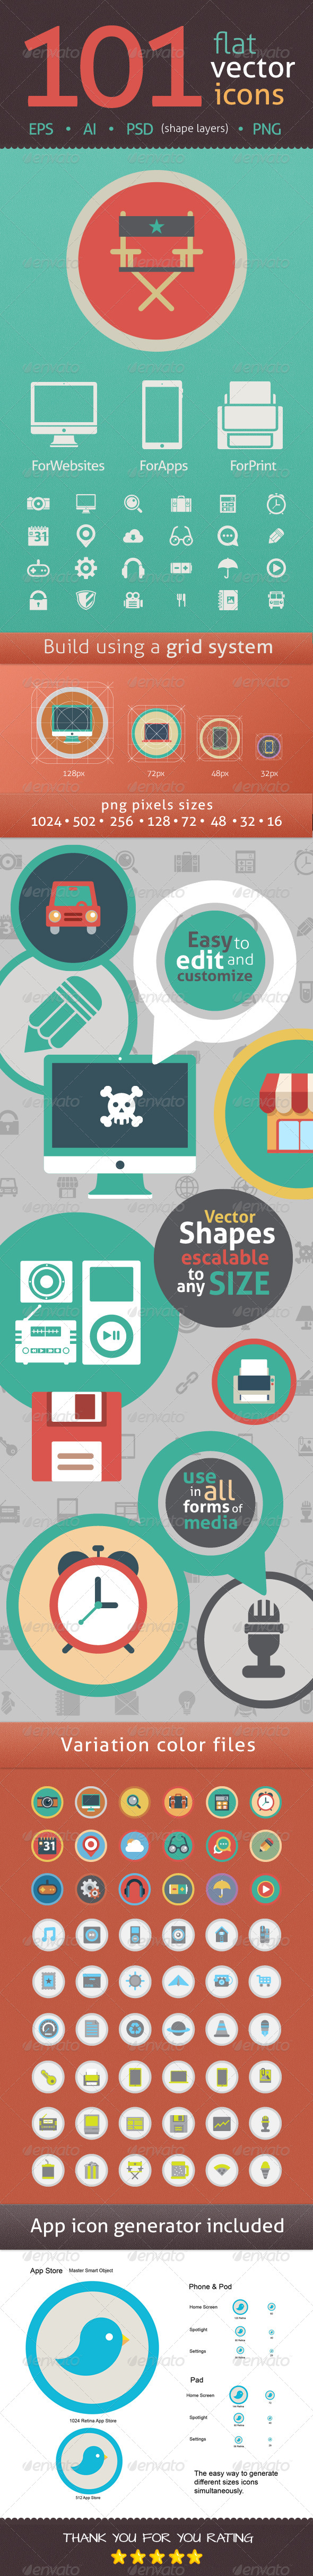 101 Flat Icons in Vector Format and Shape Layers